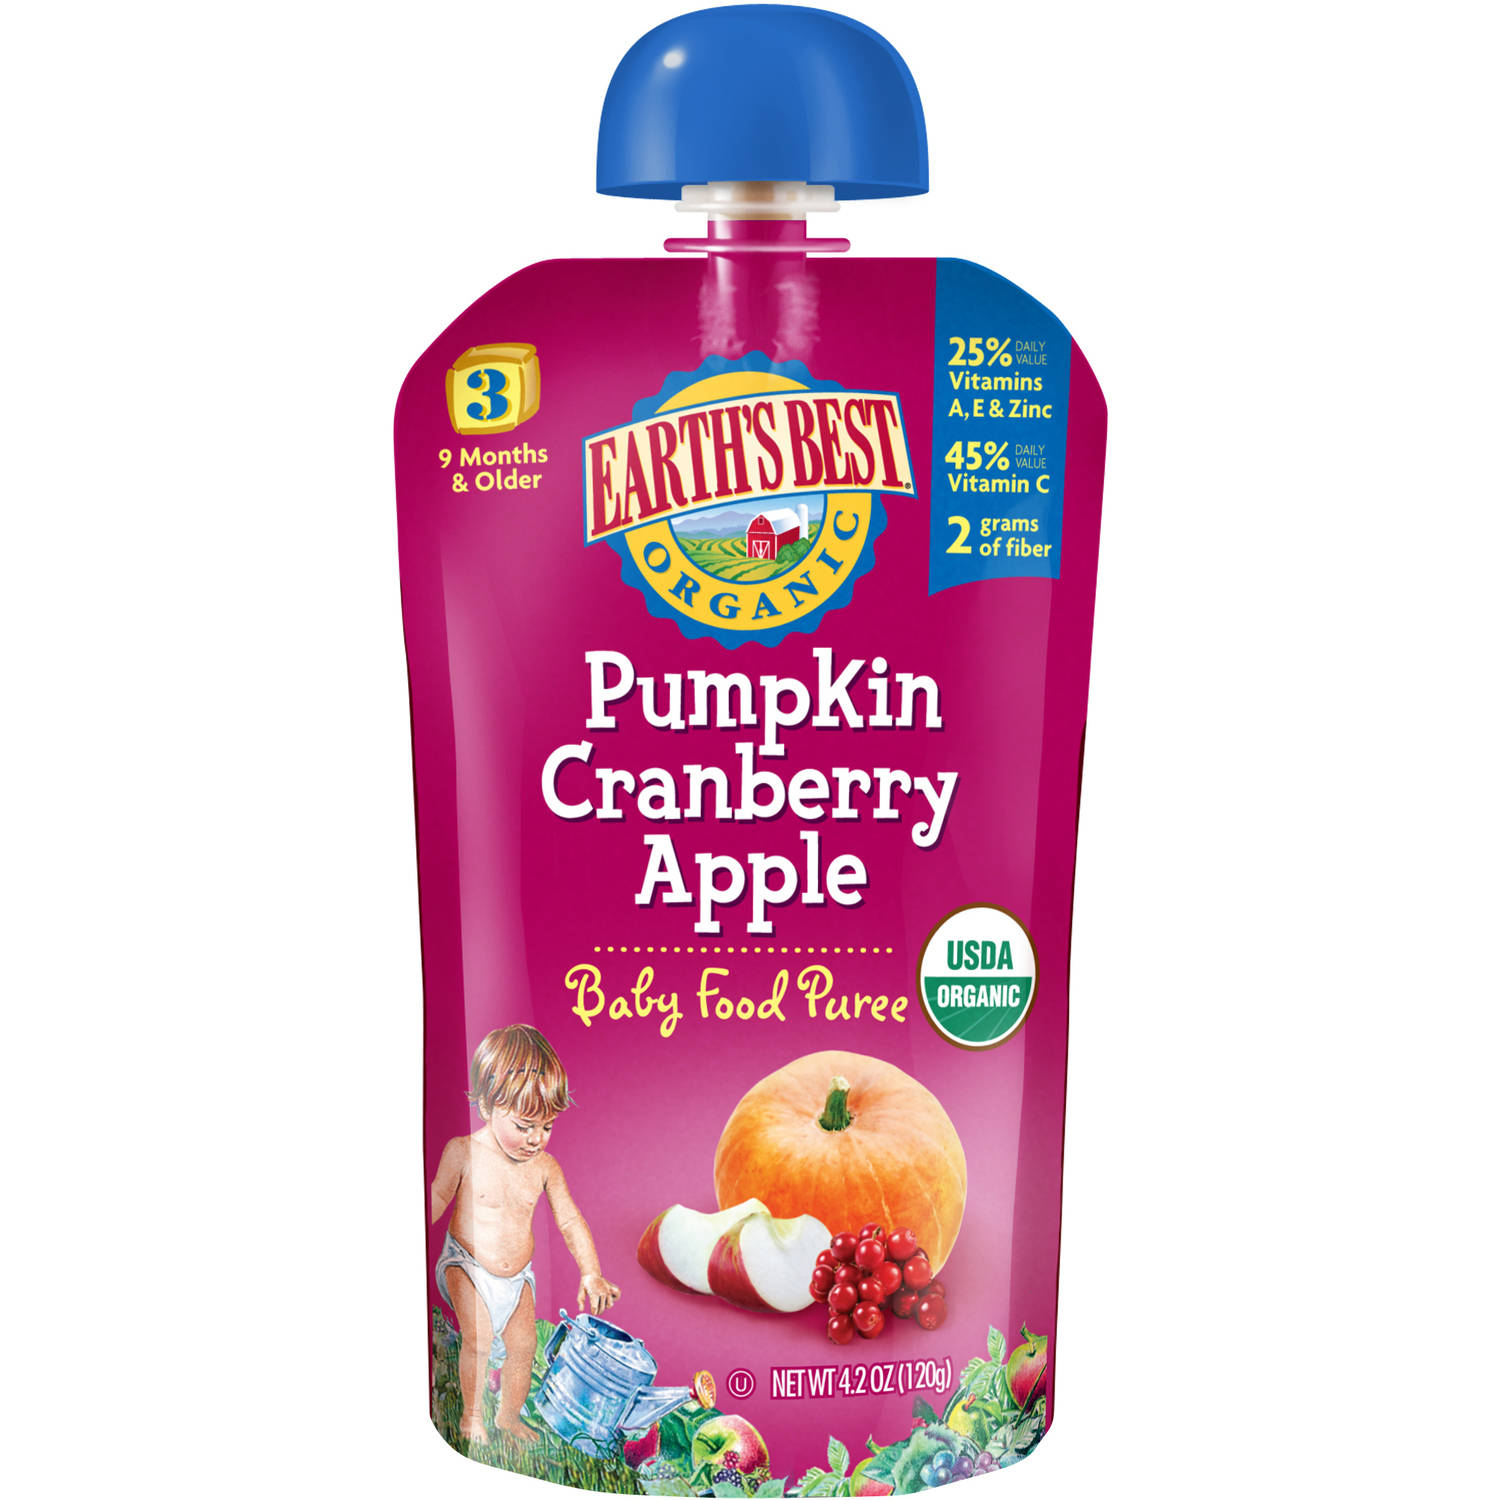 Earth's Best Organic Pumpkin Cranberry Apple Baby Food Puree, 4.2 oz, (Pack of 6)